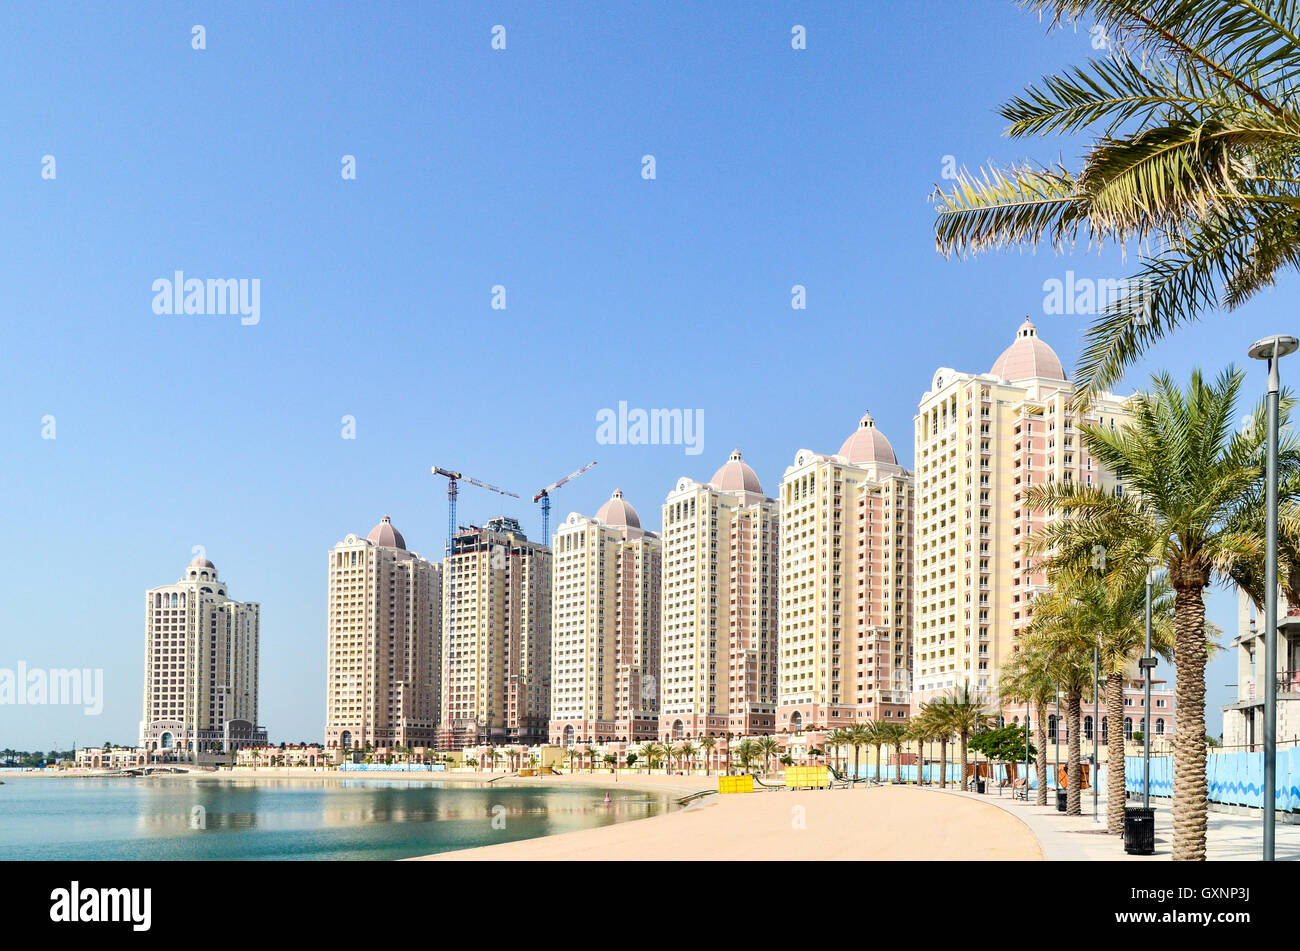 Viva Bahriya, construction of new residential towers on the artificial island of The Pearl-Qatar - Stock Image